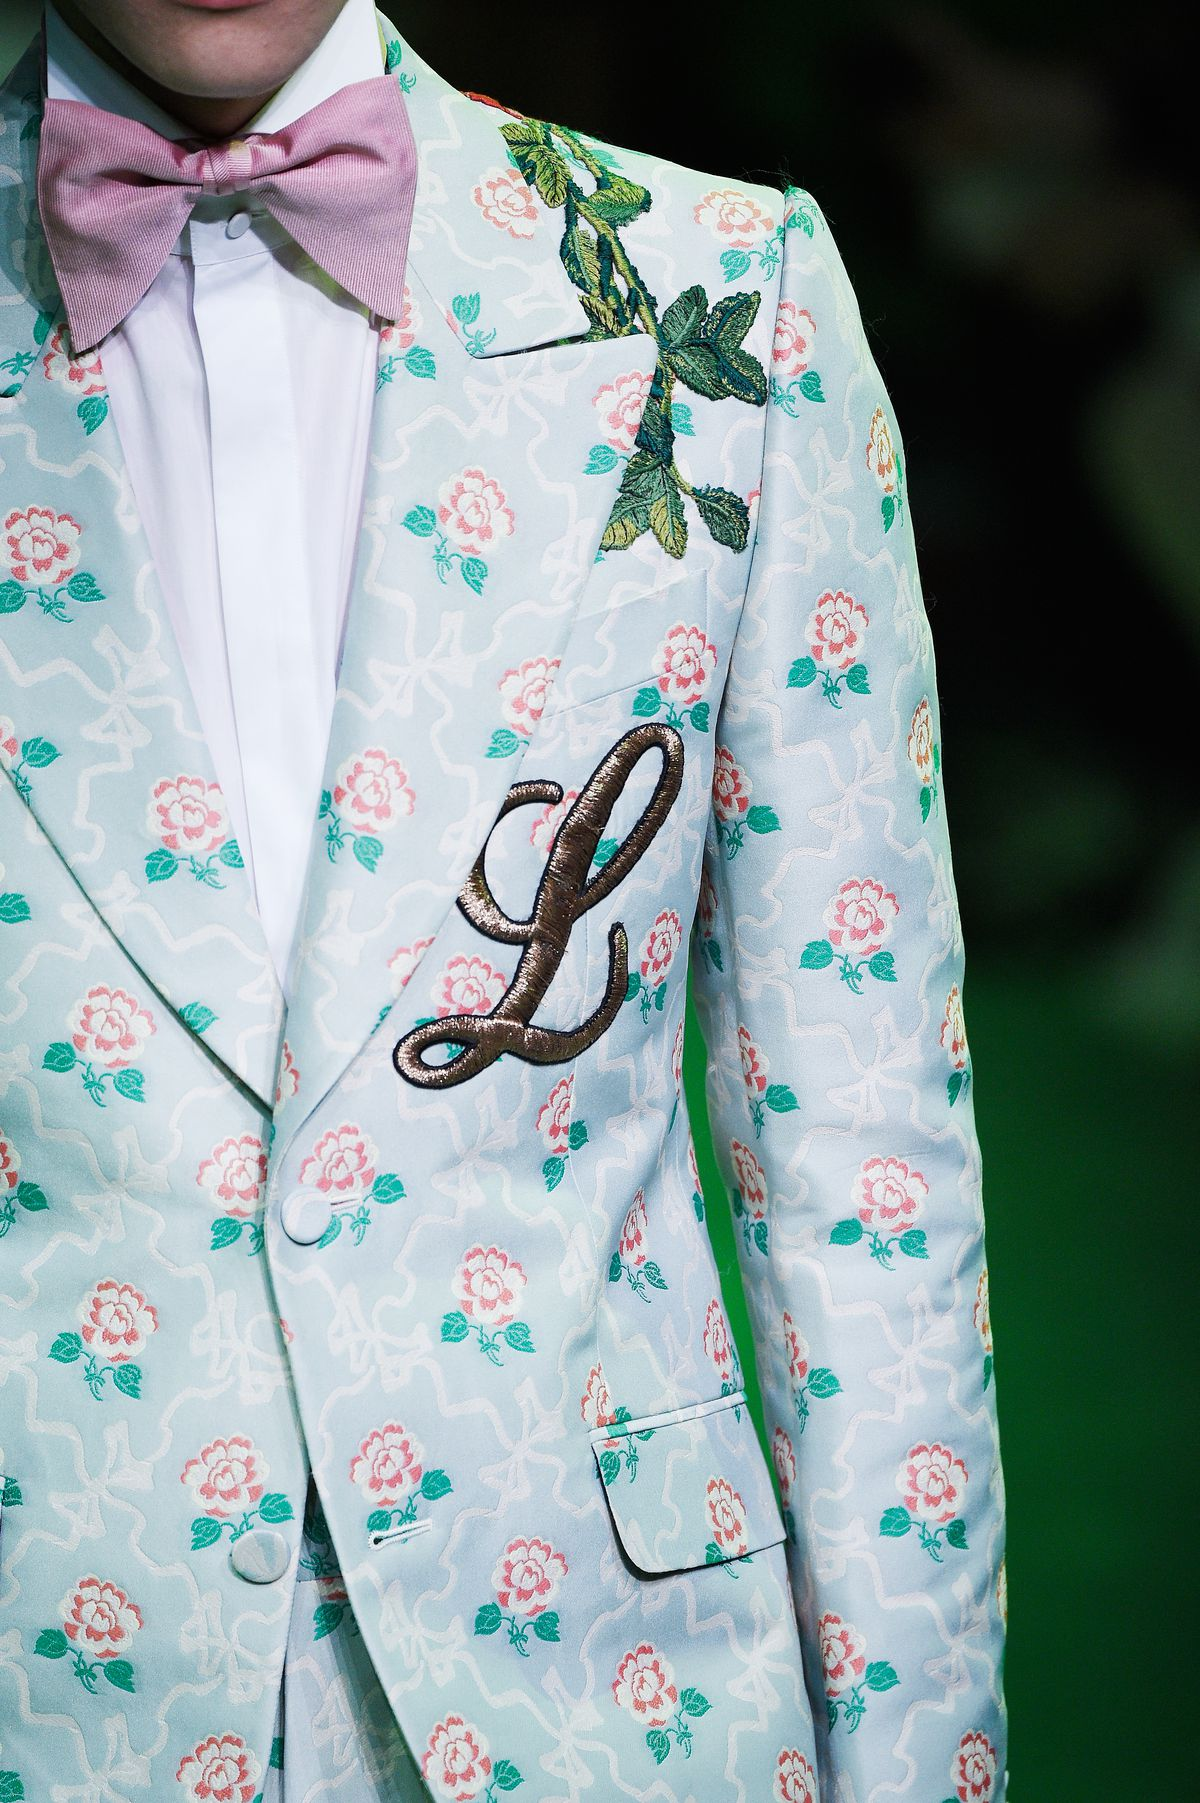 A model walks the runway in a pale blue floral suit with an L monogrammed on the breast.